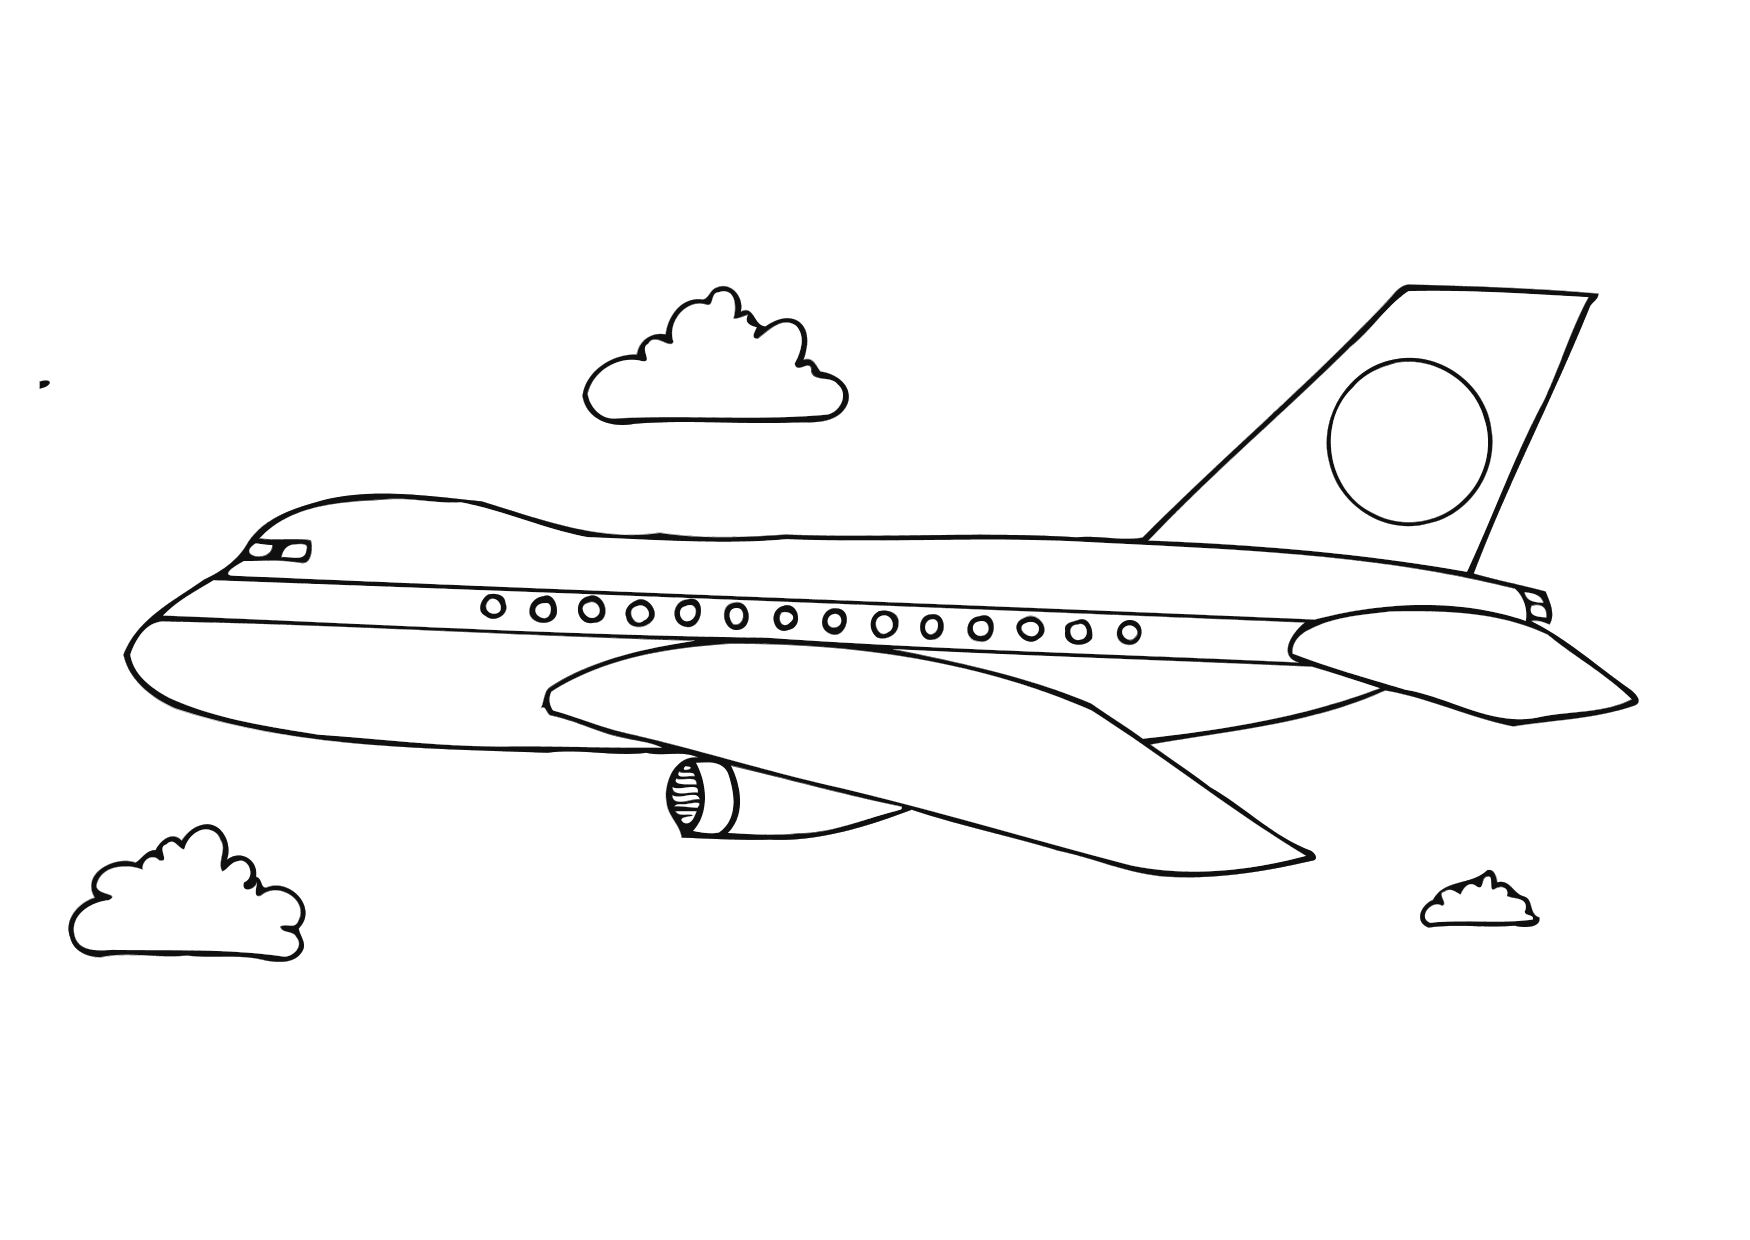 photos of airplane coloring pages - Airplane Coloring Pages Printable